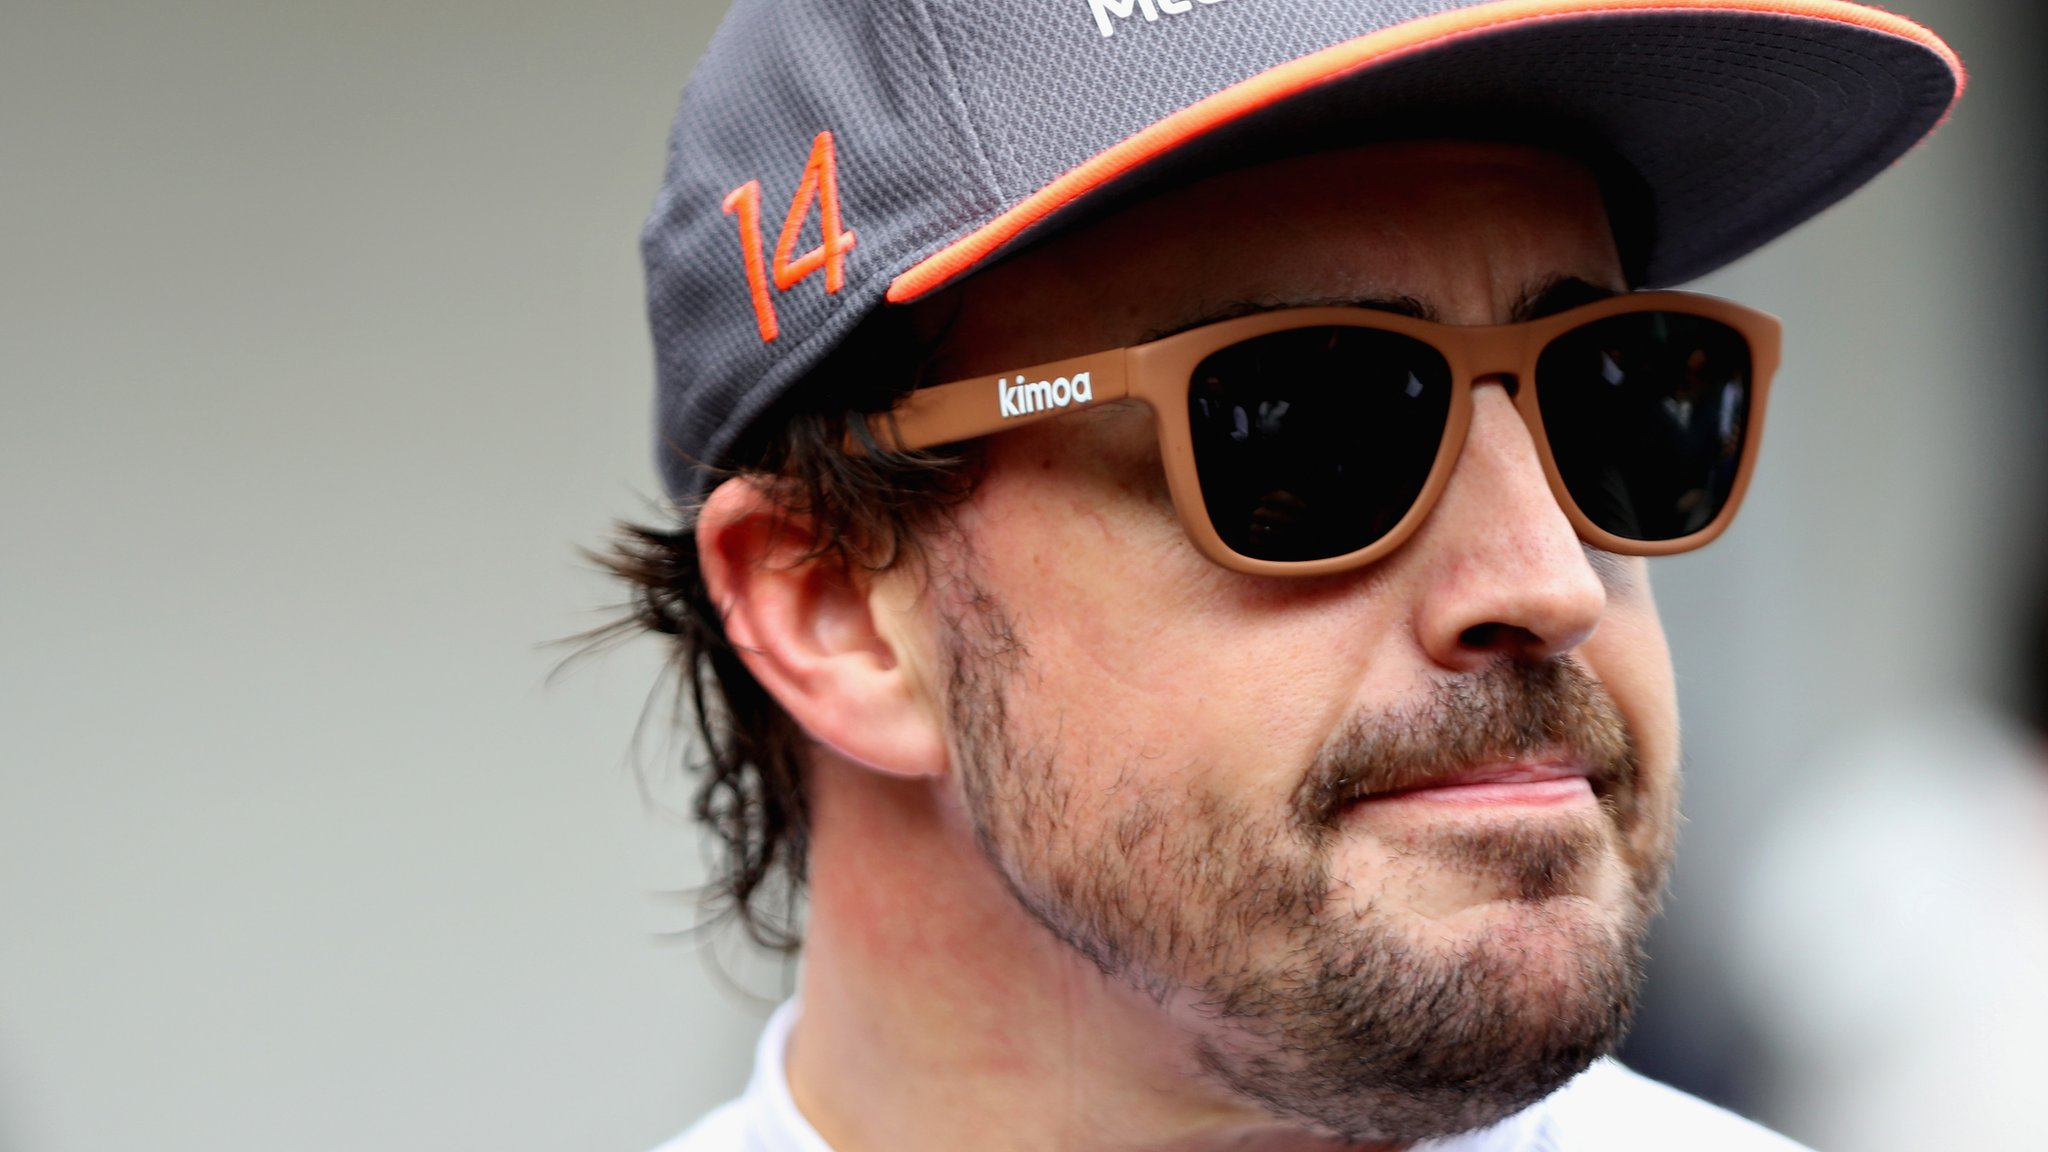 Fernando Alonso performs 'very well' in Le Mans prototype car, says Toyota adviser